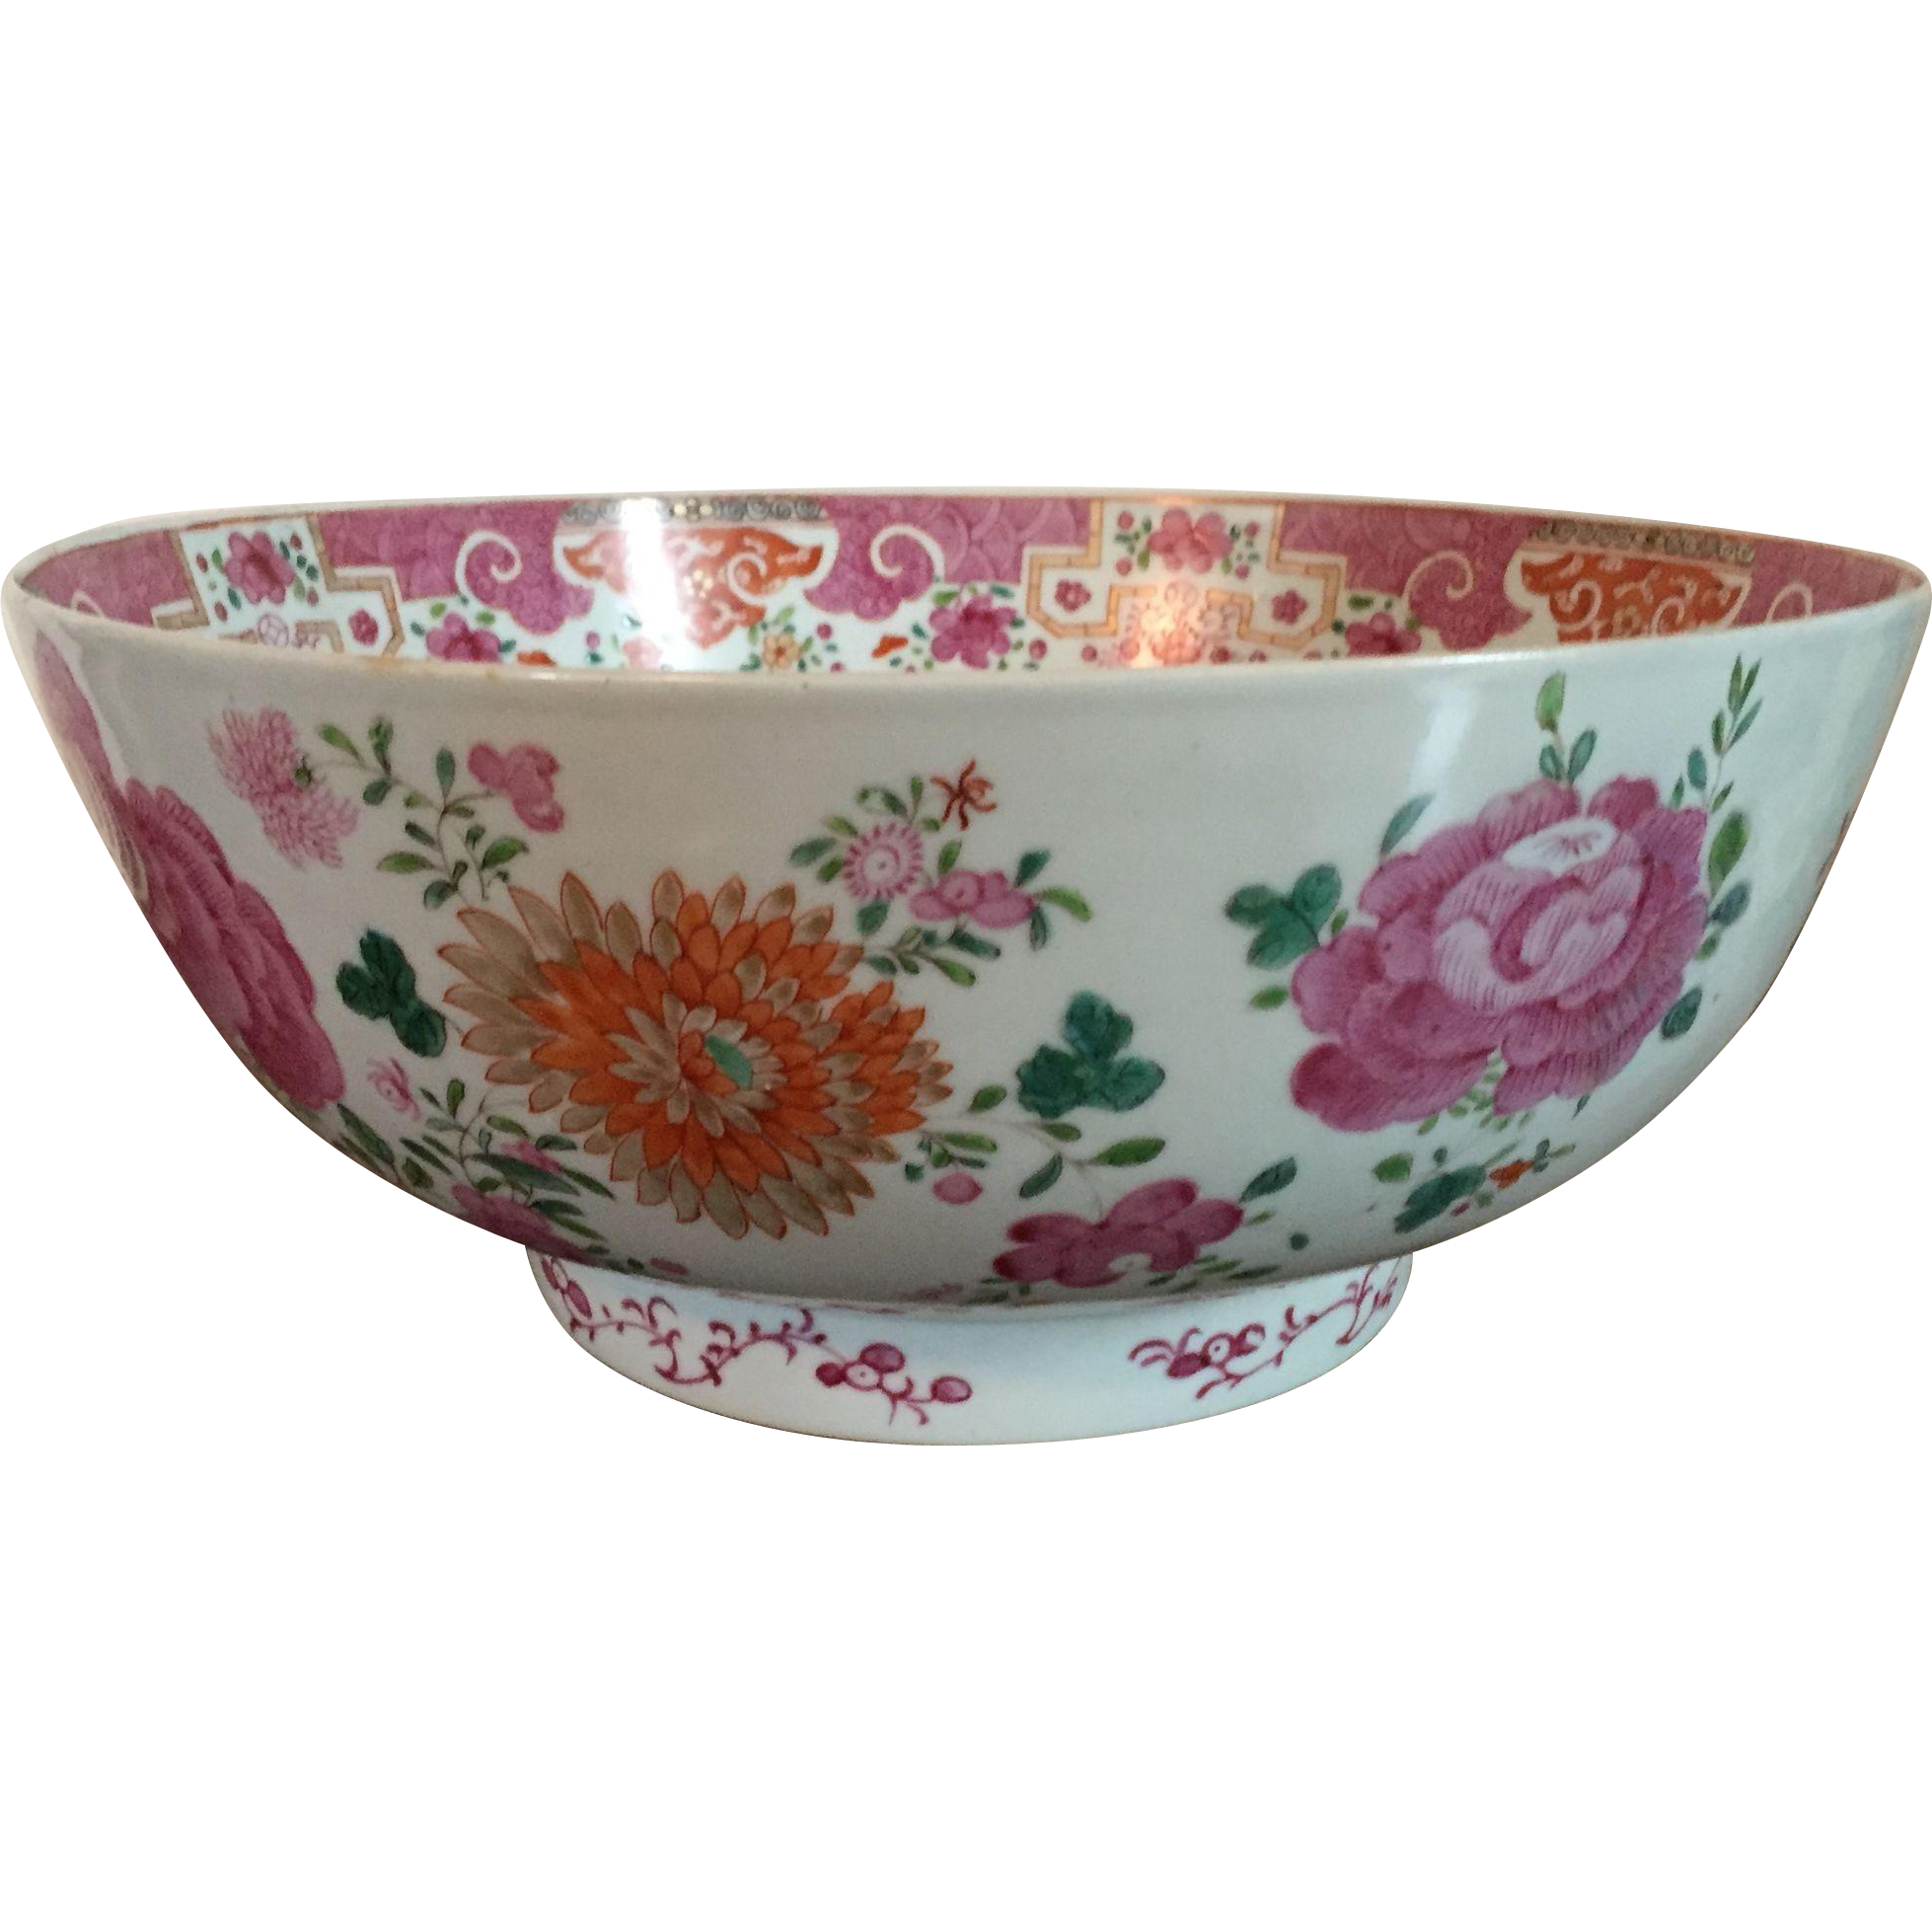 Large Antique 18th Century Chinese Export Porcelain Punch Bowl In Famille Rose Palette Chinese Bowls Plates And Bowls Decorative Bowls